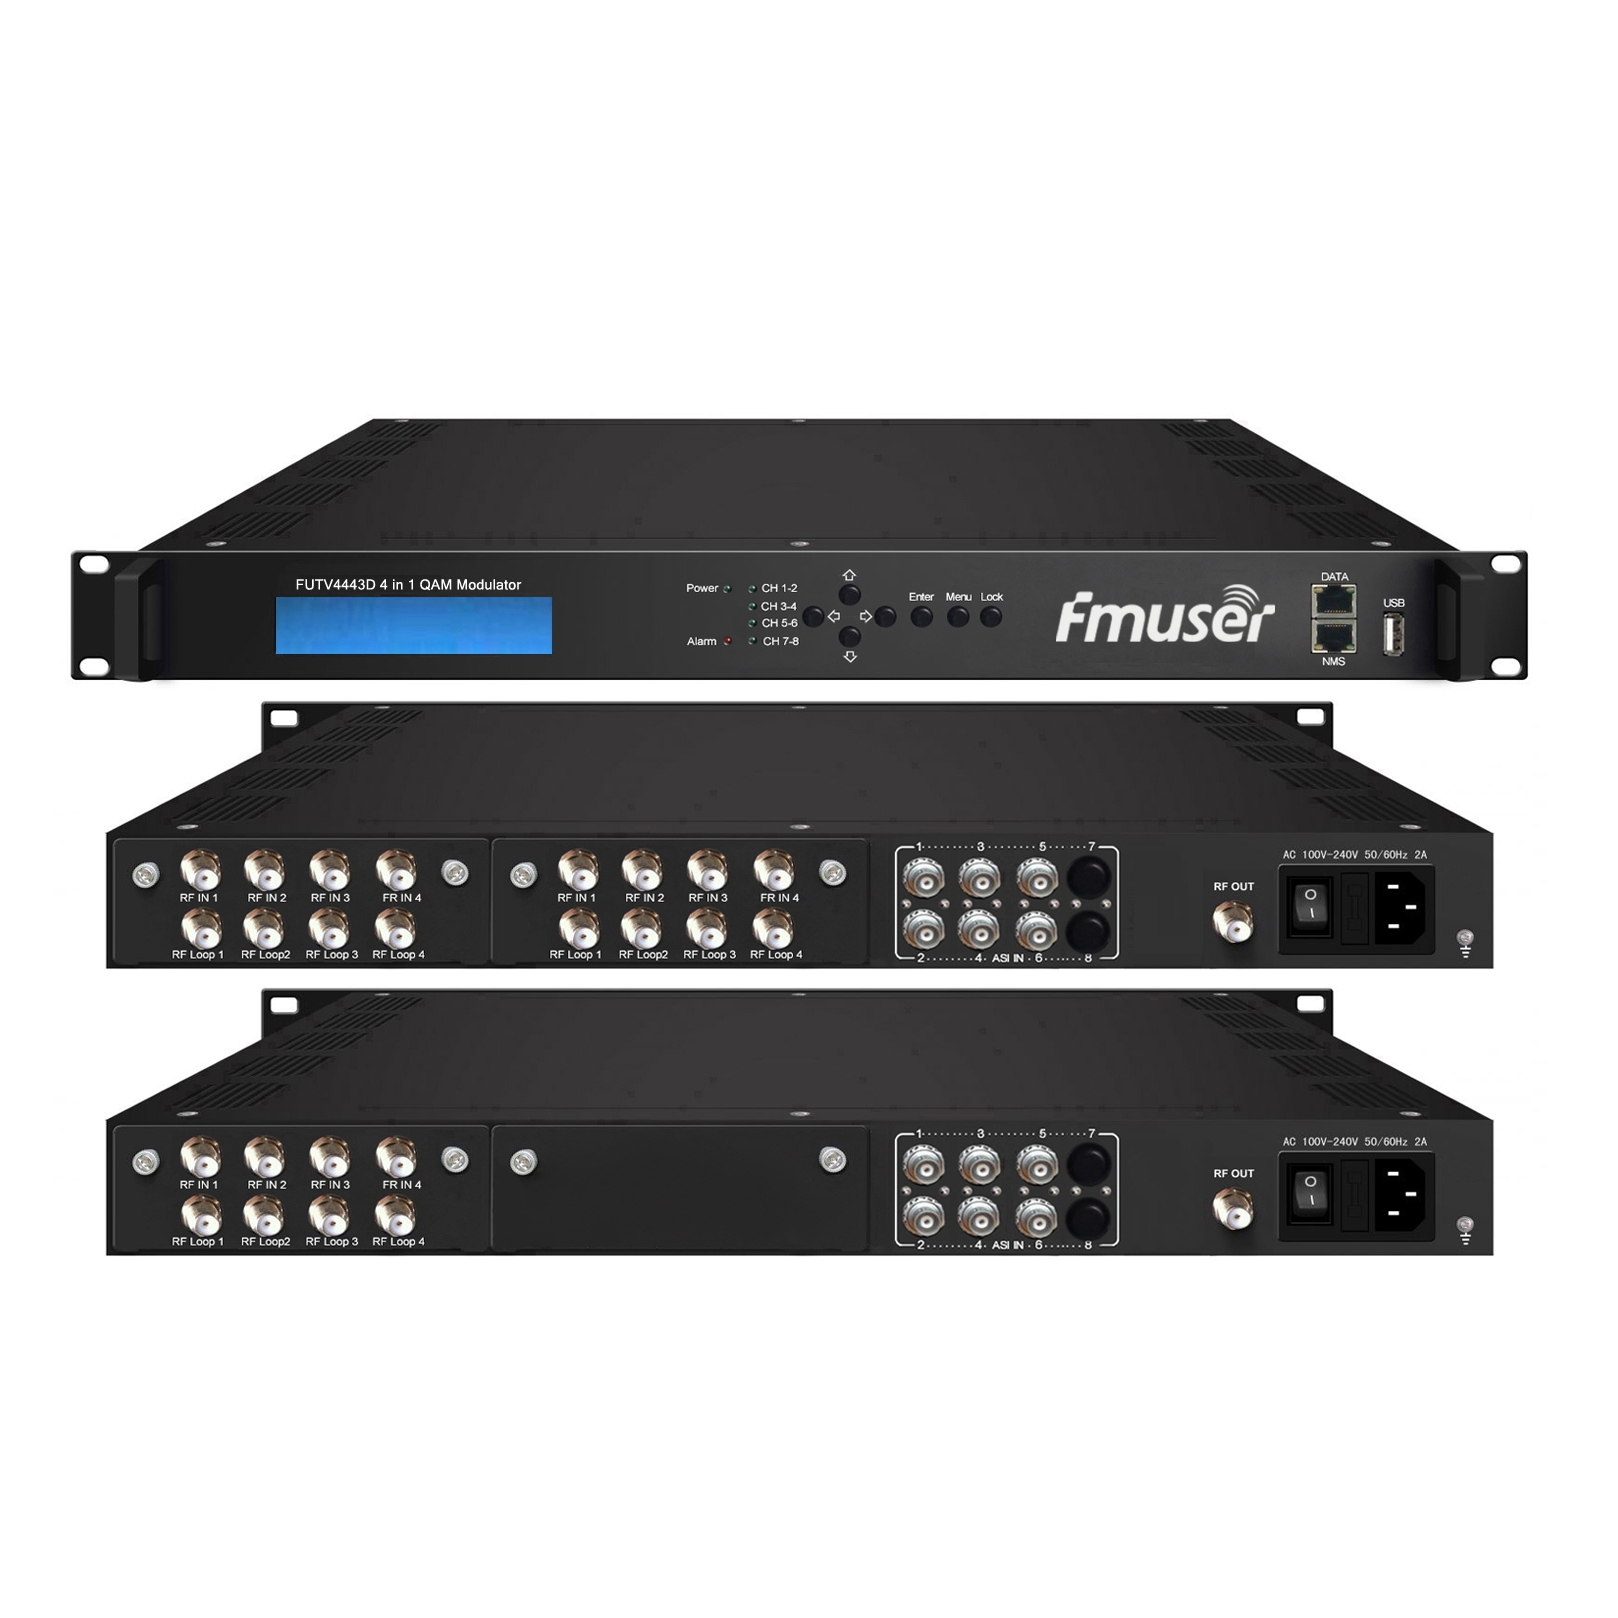 FMUSER FUTV4443D 4 in 1 Mux-Scrambling QAM-Modulator (8Tuner + 6 * ASI in, 4Tuner + 6 * ASI + 2 * IP-out) mit Web-managementtor